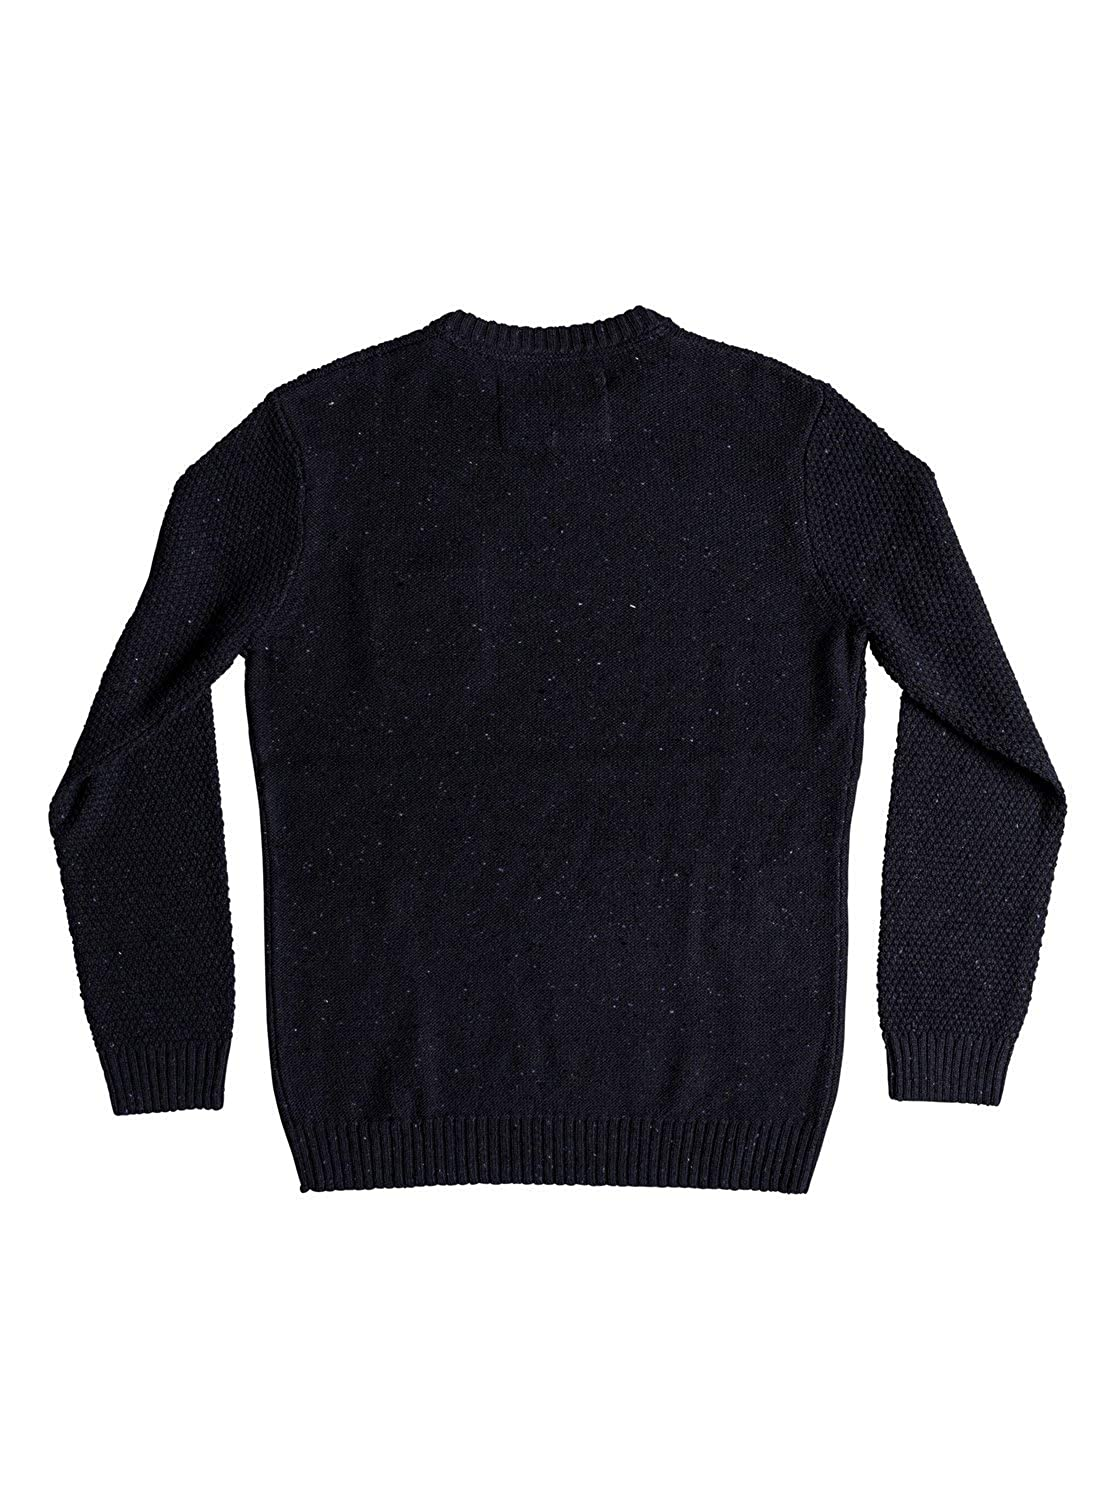 Quiksilver Newchester Jumper for Men EQYSW03164